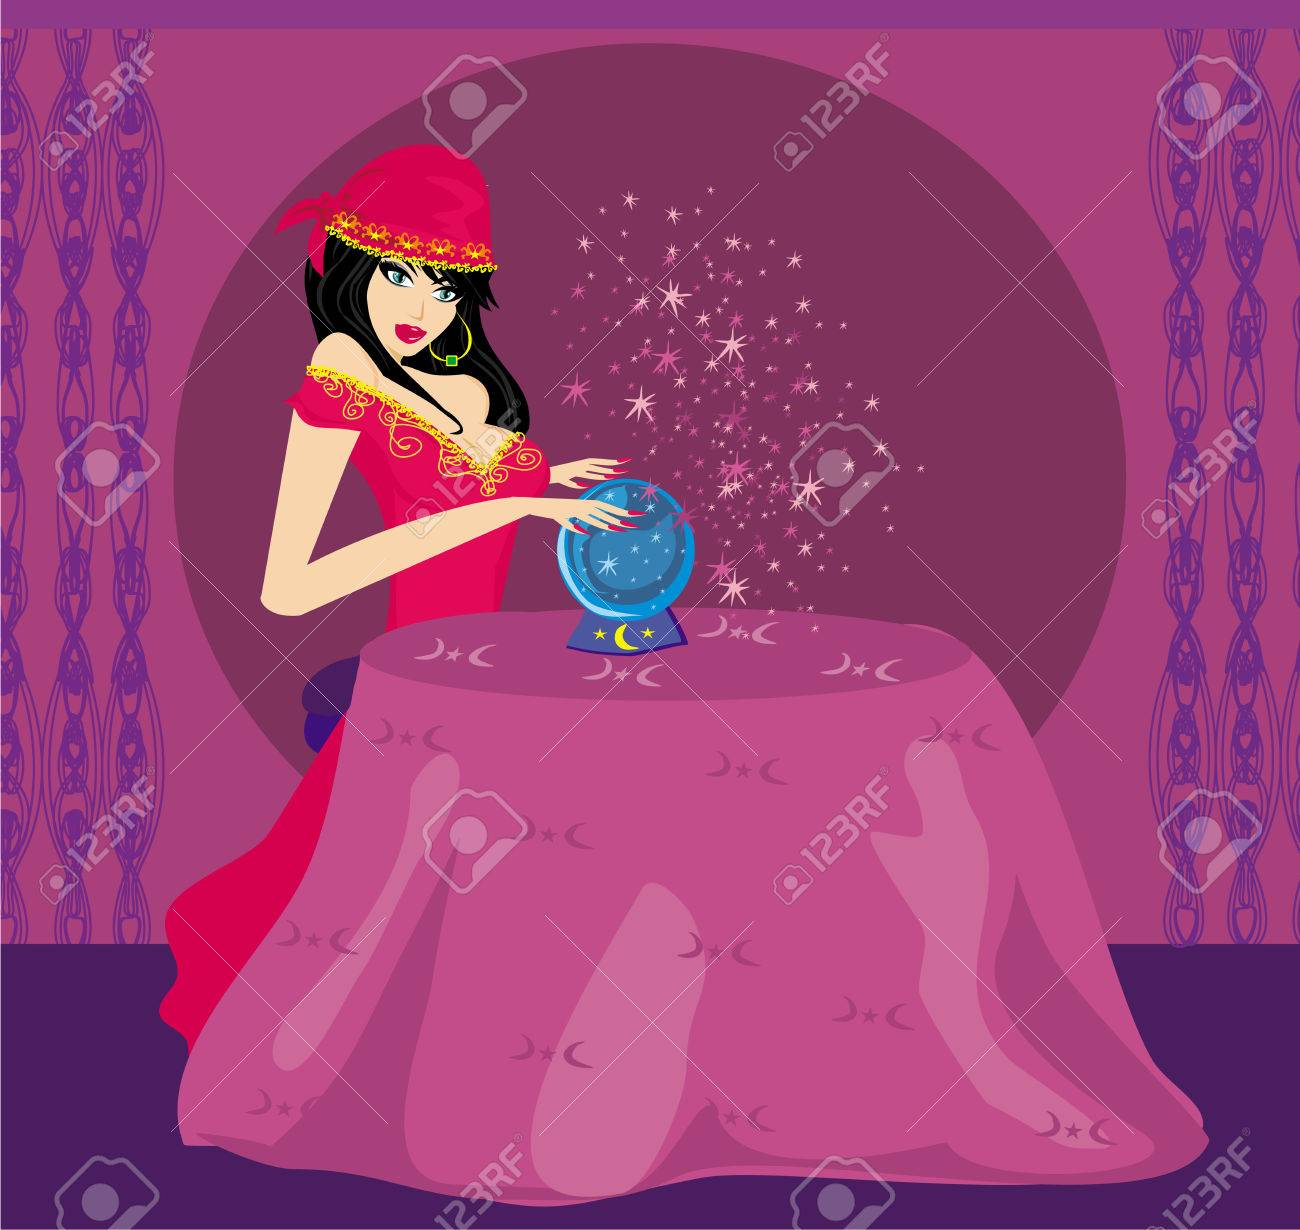 Fortune-teller with Crystal Ball - 25086358